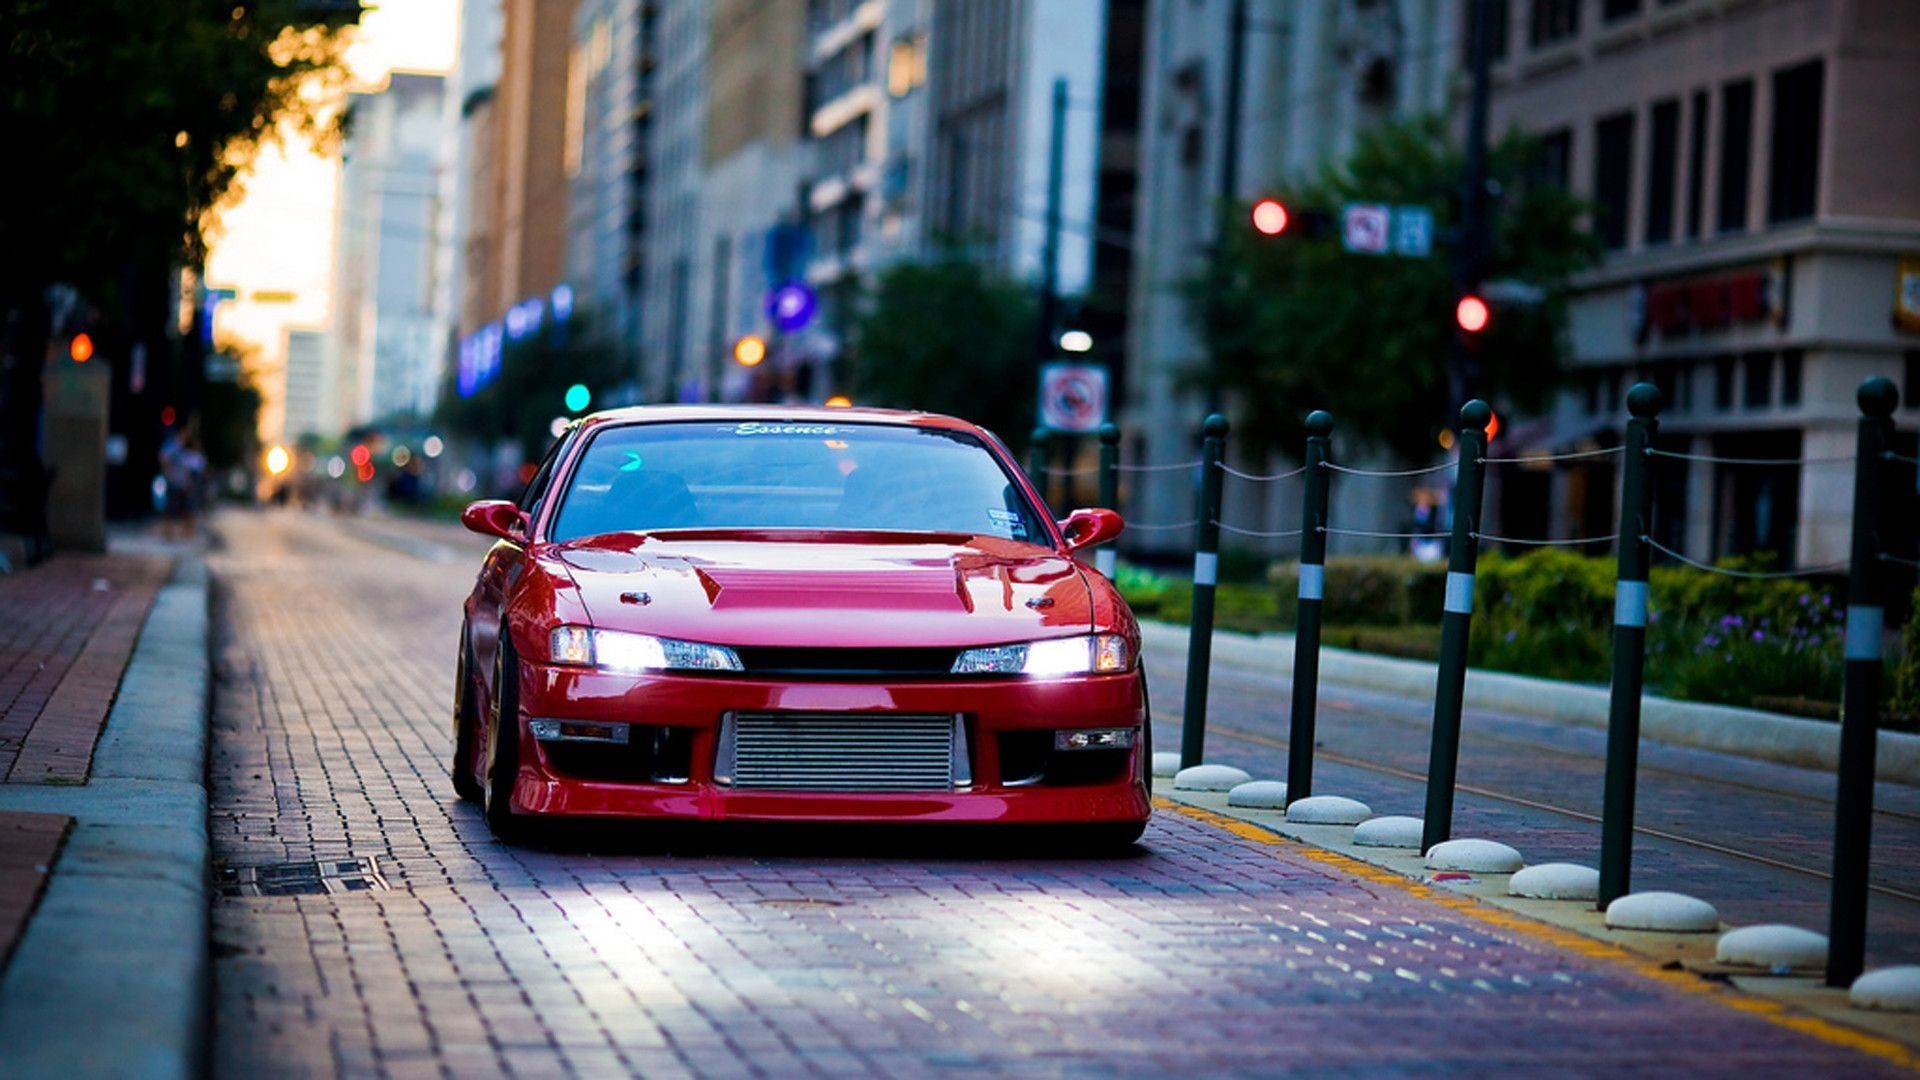 1920x1080 - Nissan Silvia S14 Wallpapers 31